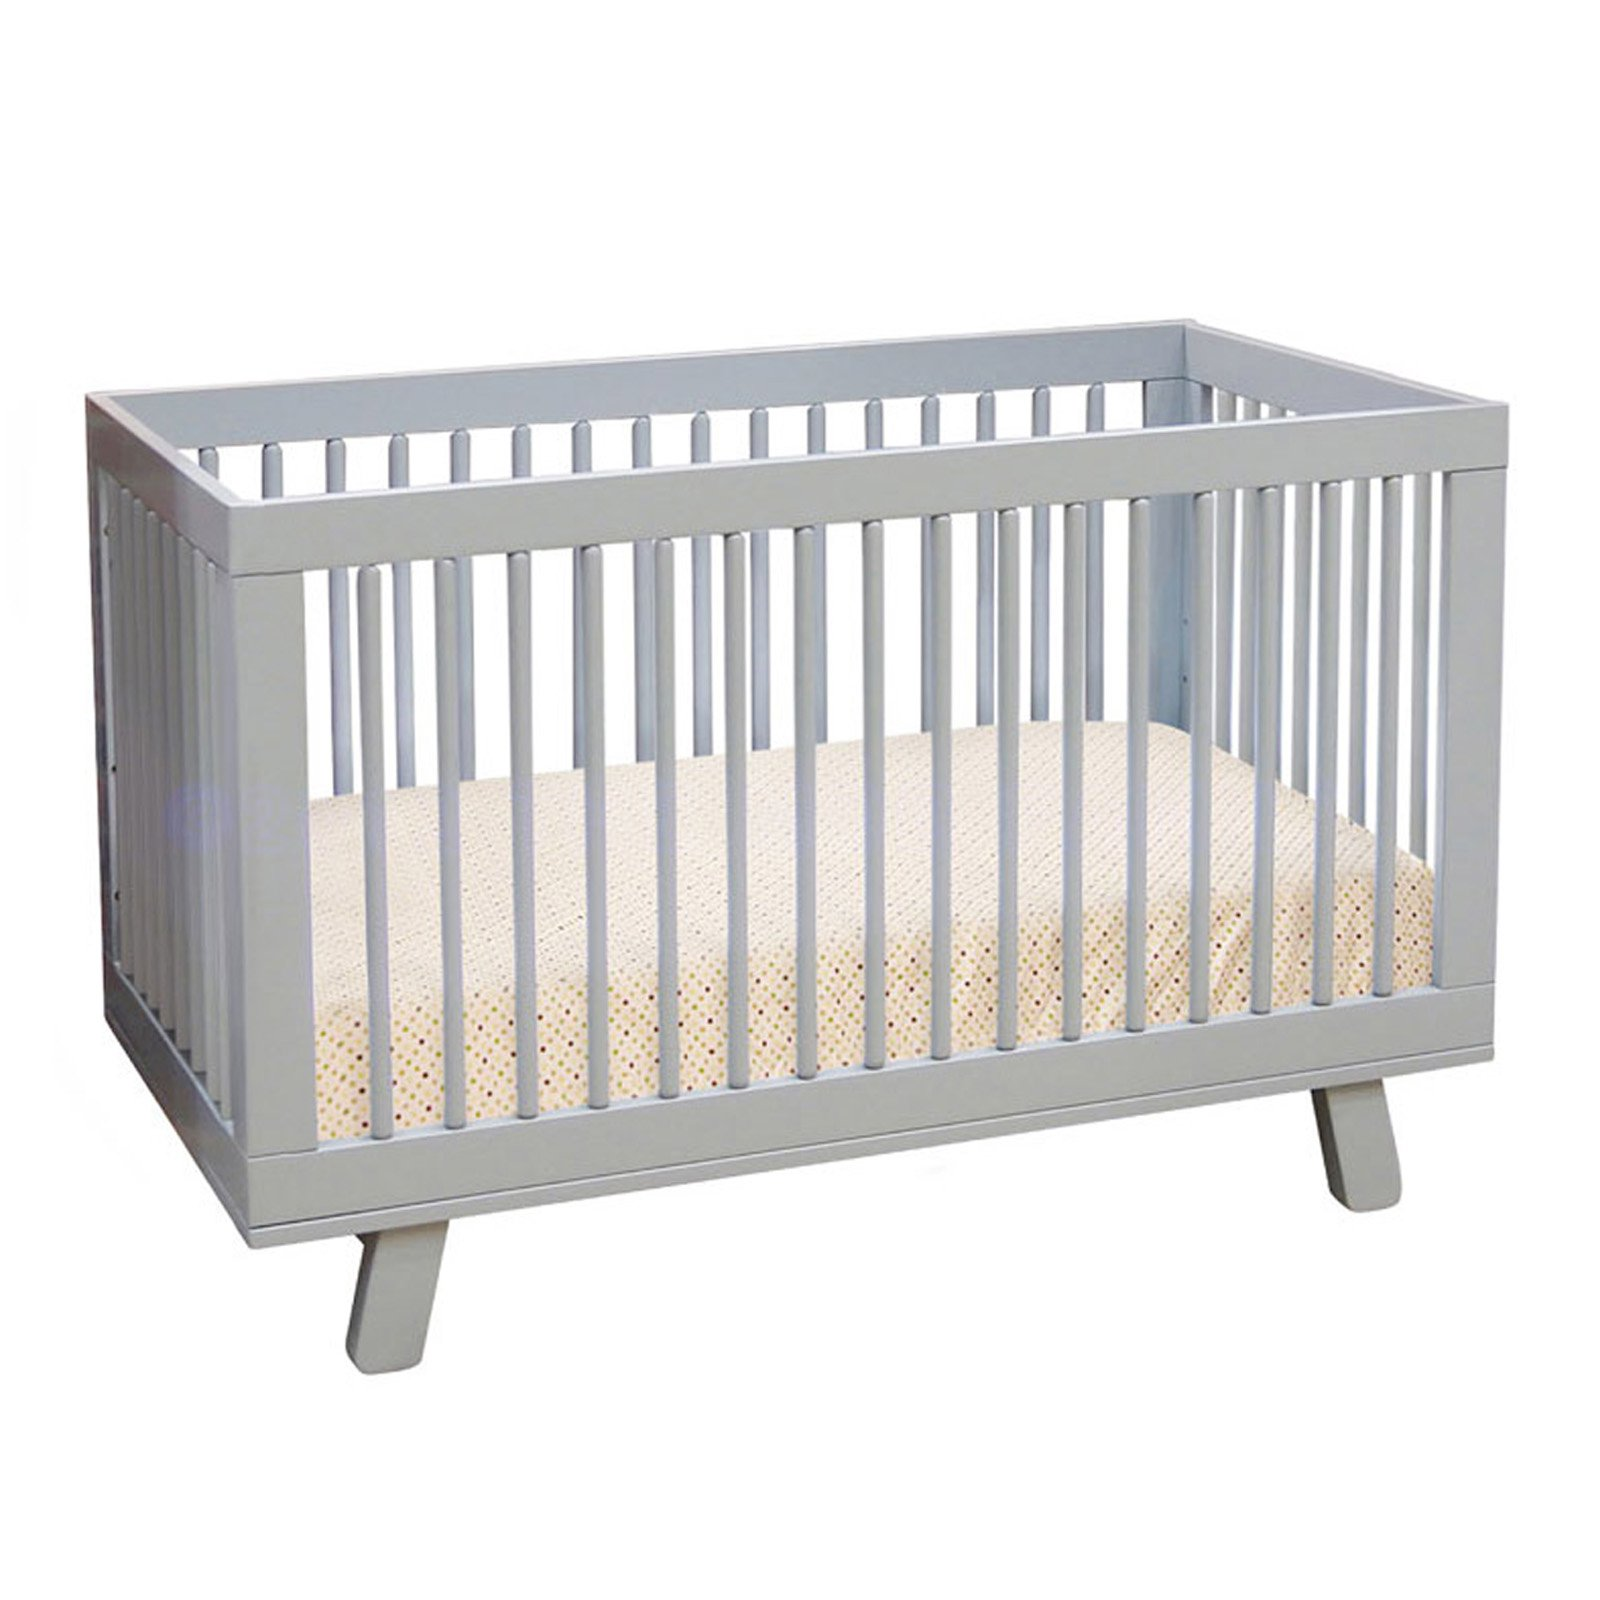 Babyletto Hudson 3-in-1 Convertible Crib with Toddler Rail, Grey